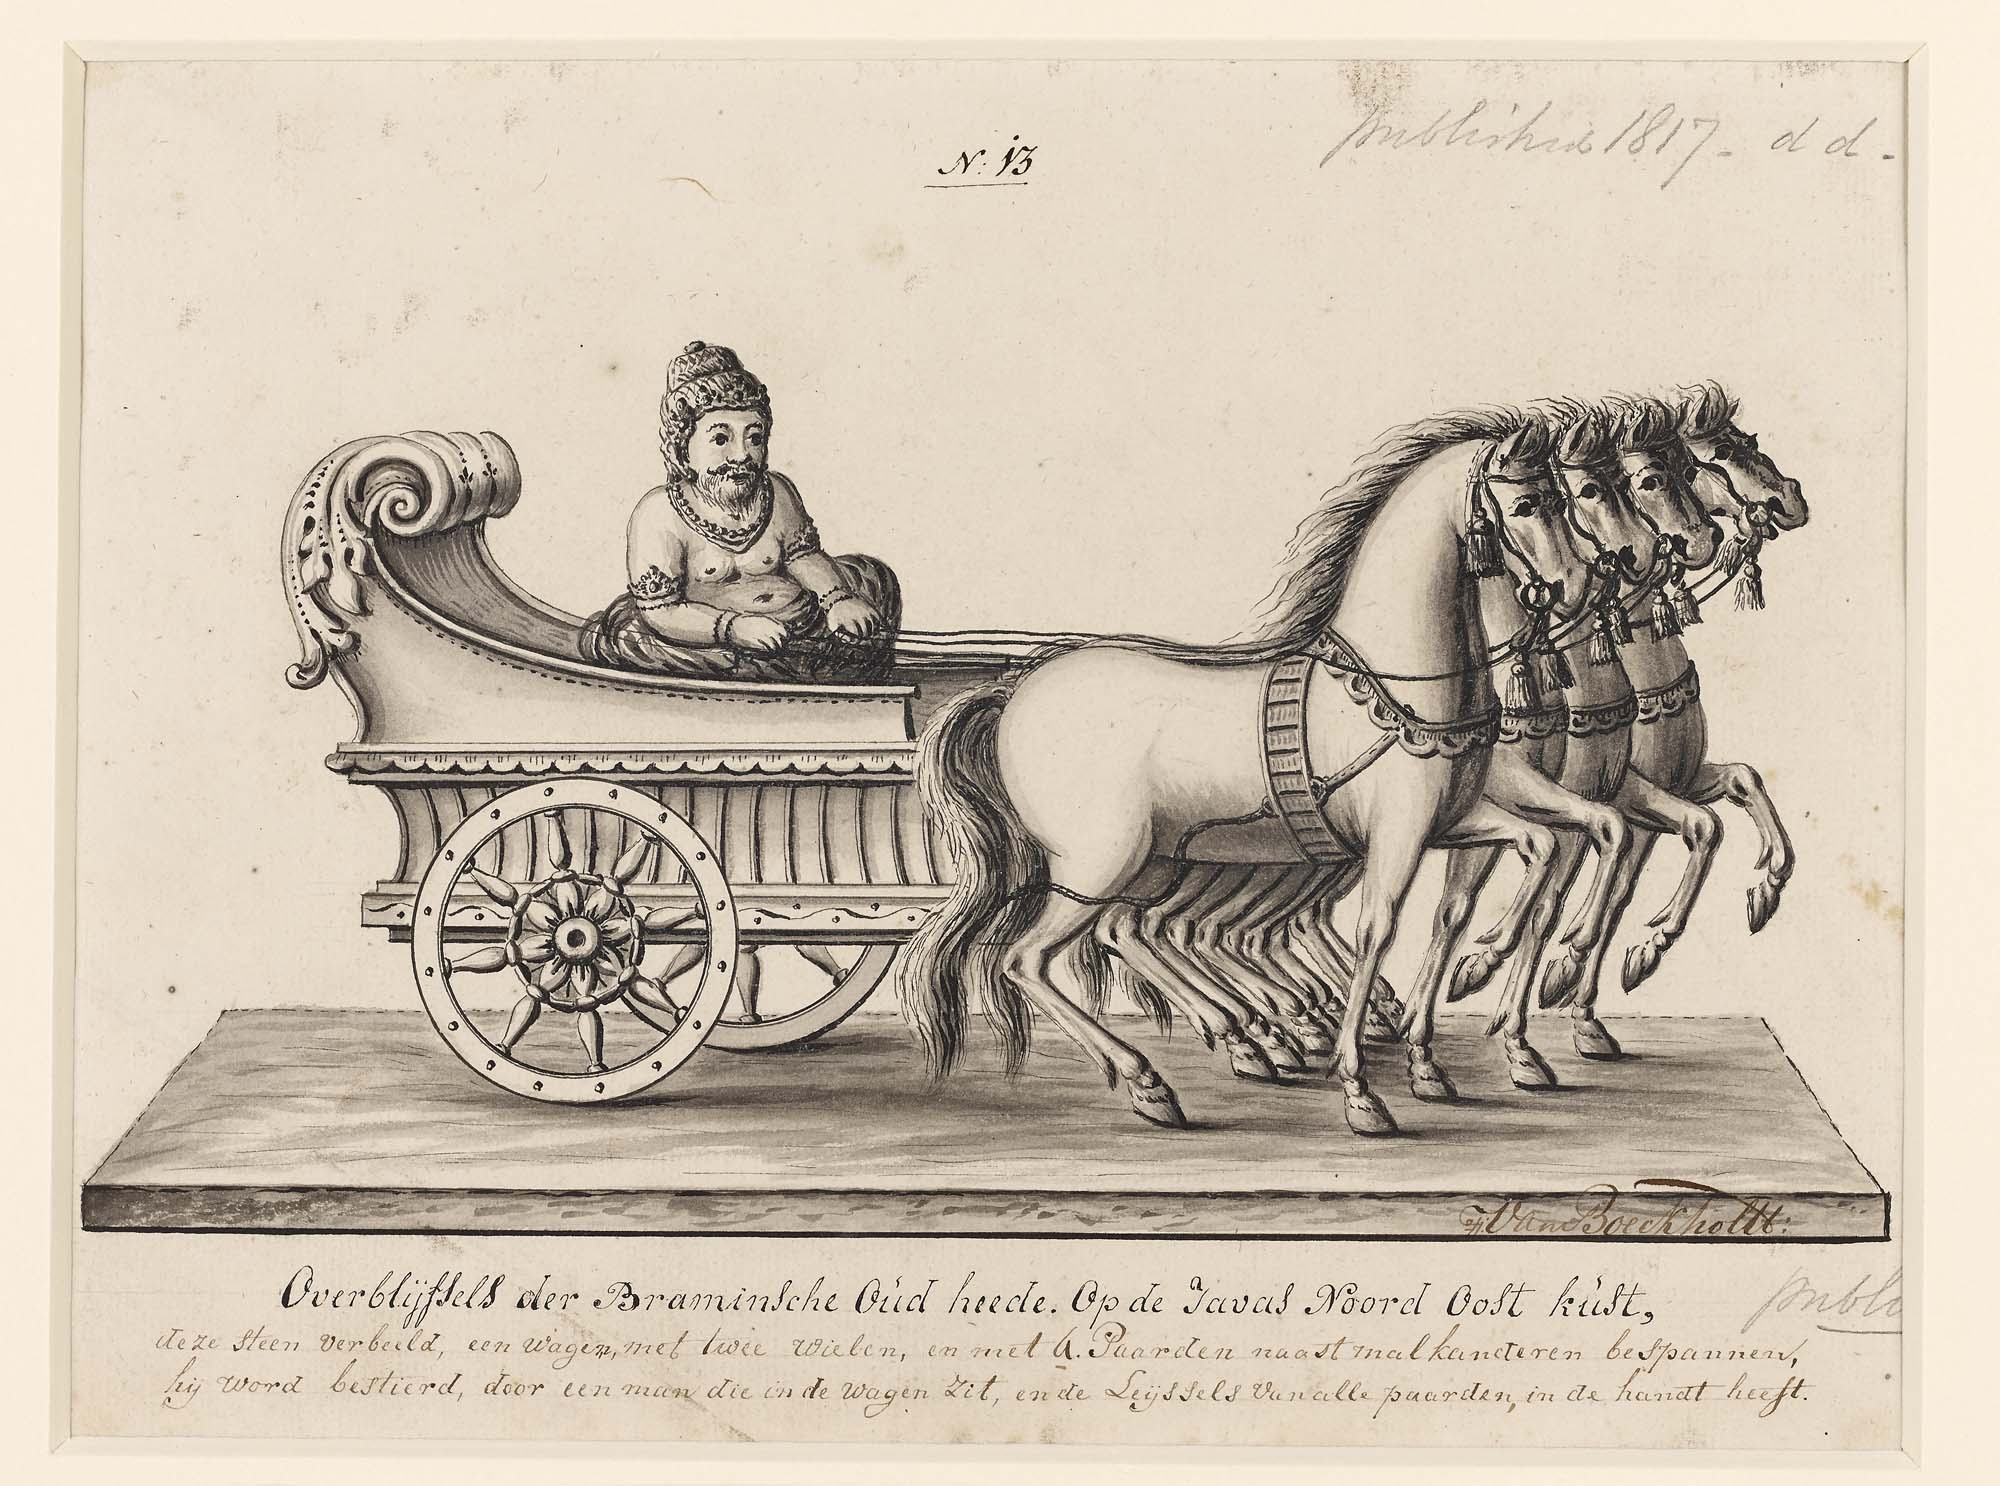 a drawing of a hindu god riding a chariot pulled by four horses